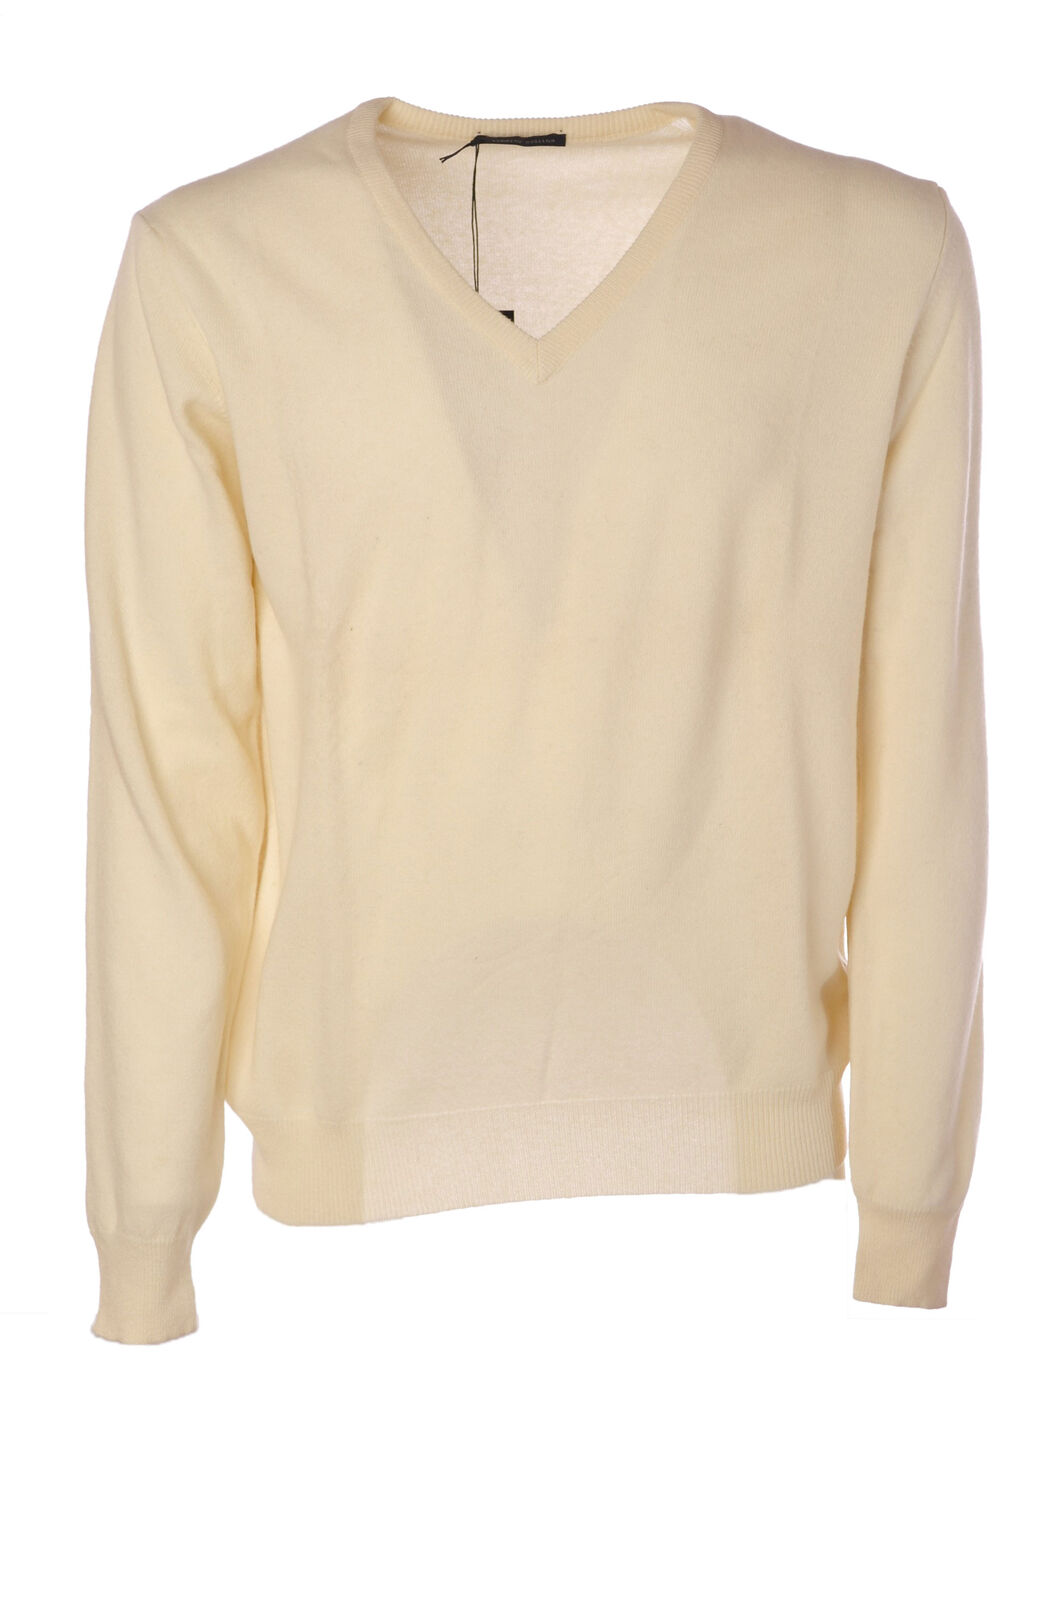 Roberto Collina  -  Sweaters - Male - White - 2845329N173553